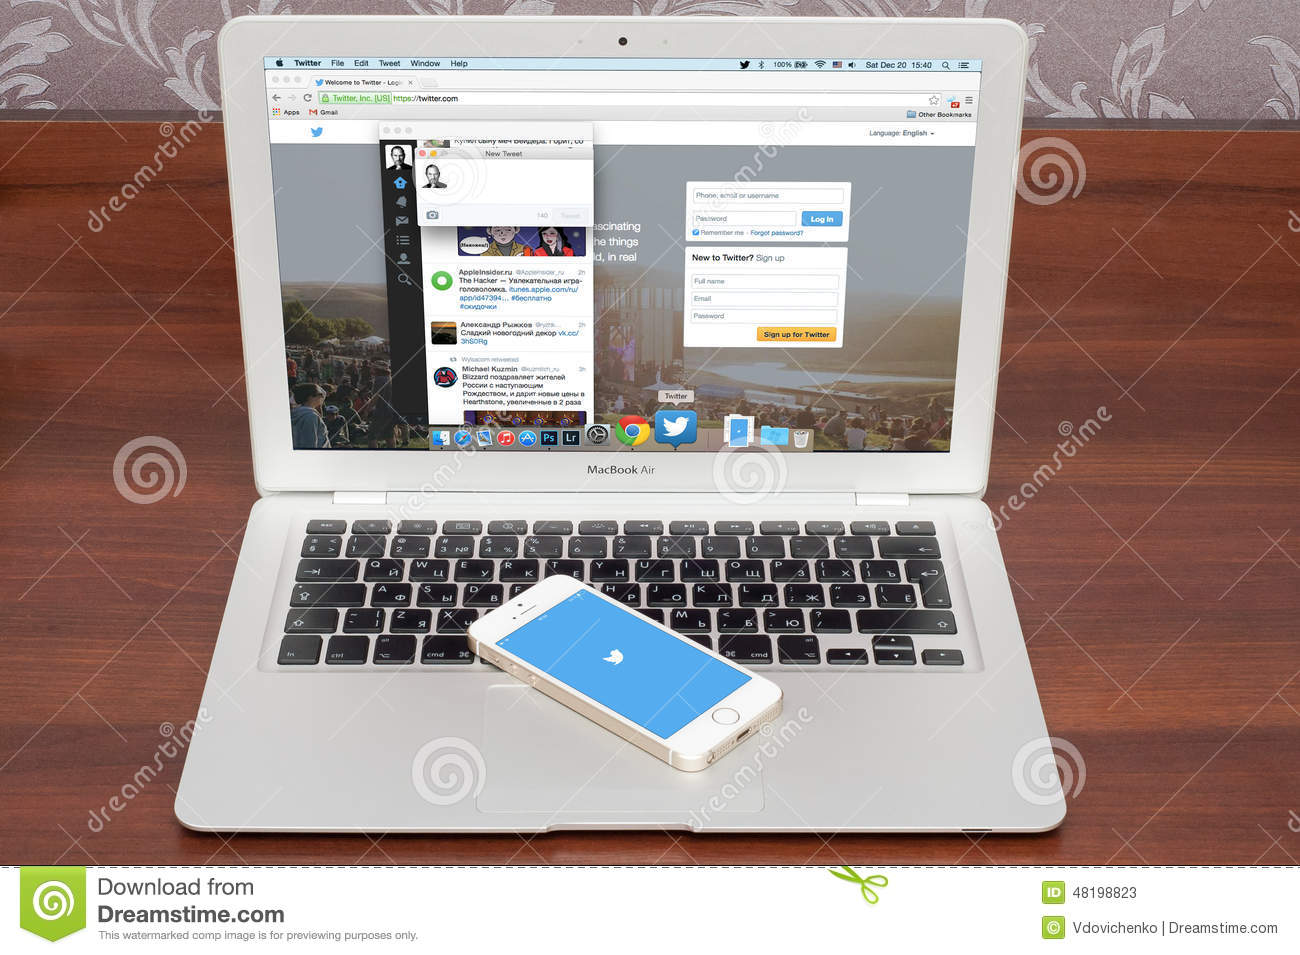 how to download twitter videos to phone